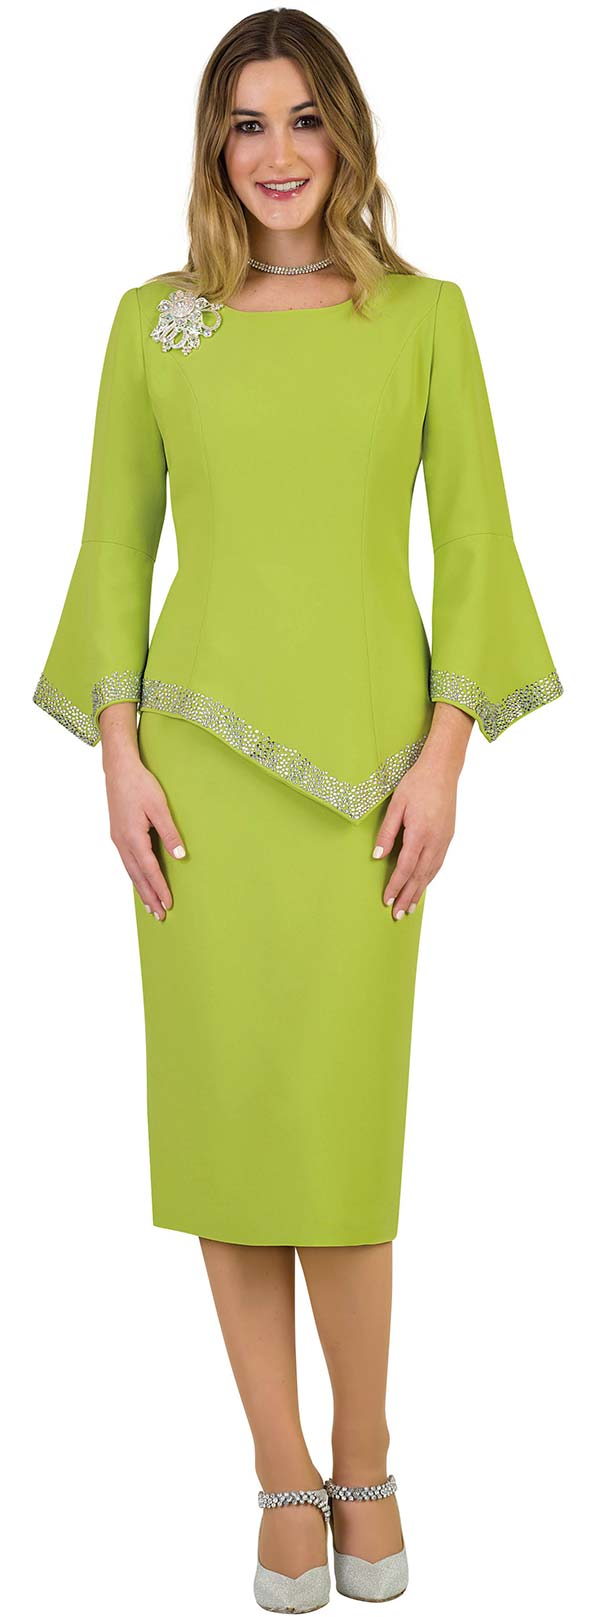 Lily and Taylor 4471-Lime -  Rhinestone Trimmed Skirt Suit With Pointed Hem-Line Jacket & Sleeves